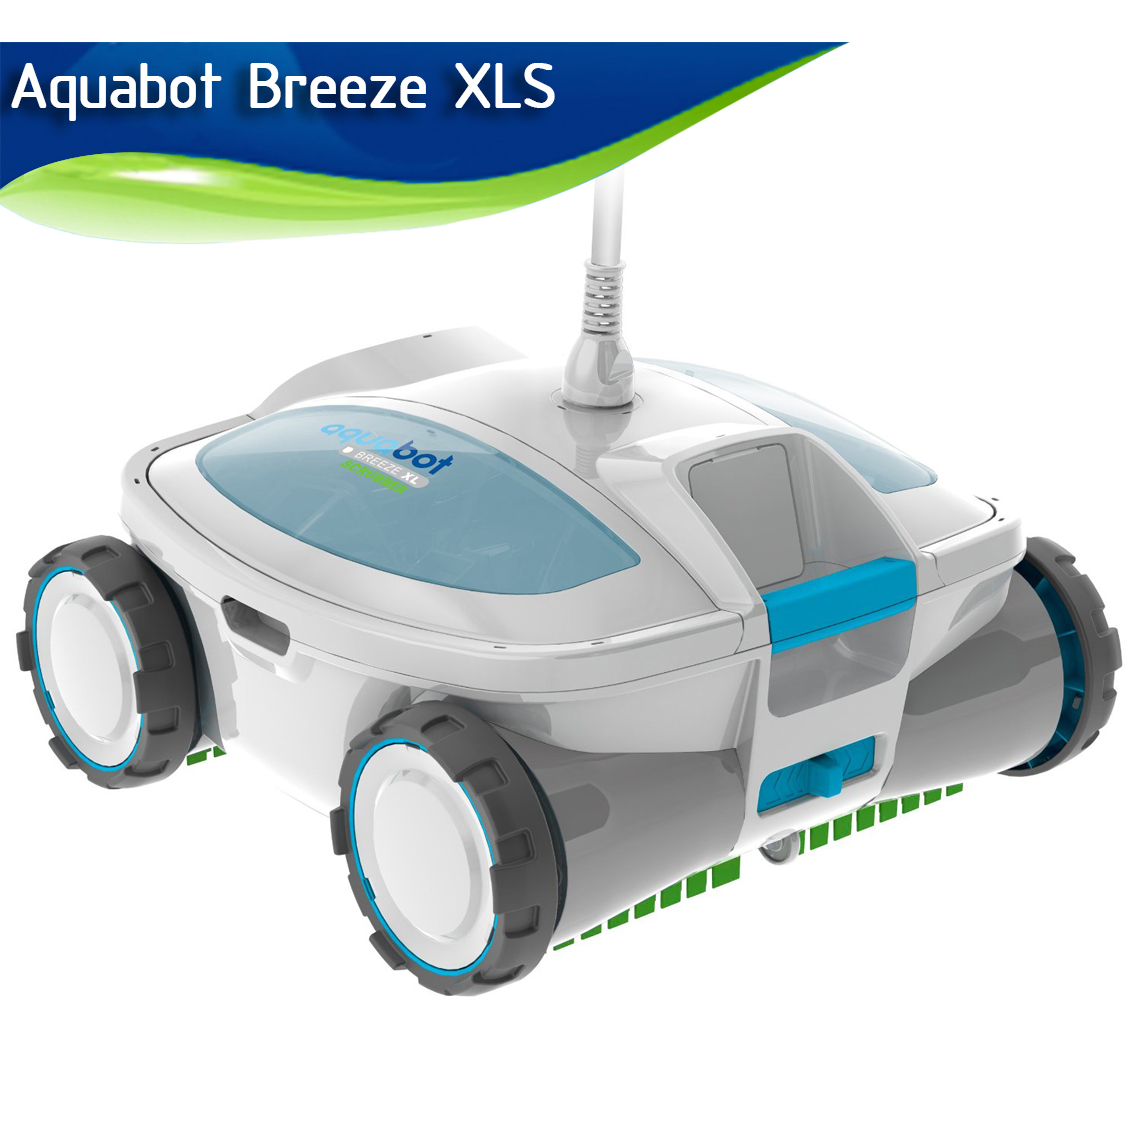 Aquabot Breeze XLS REVIEW